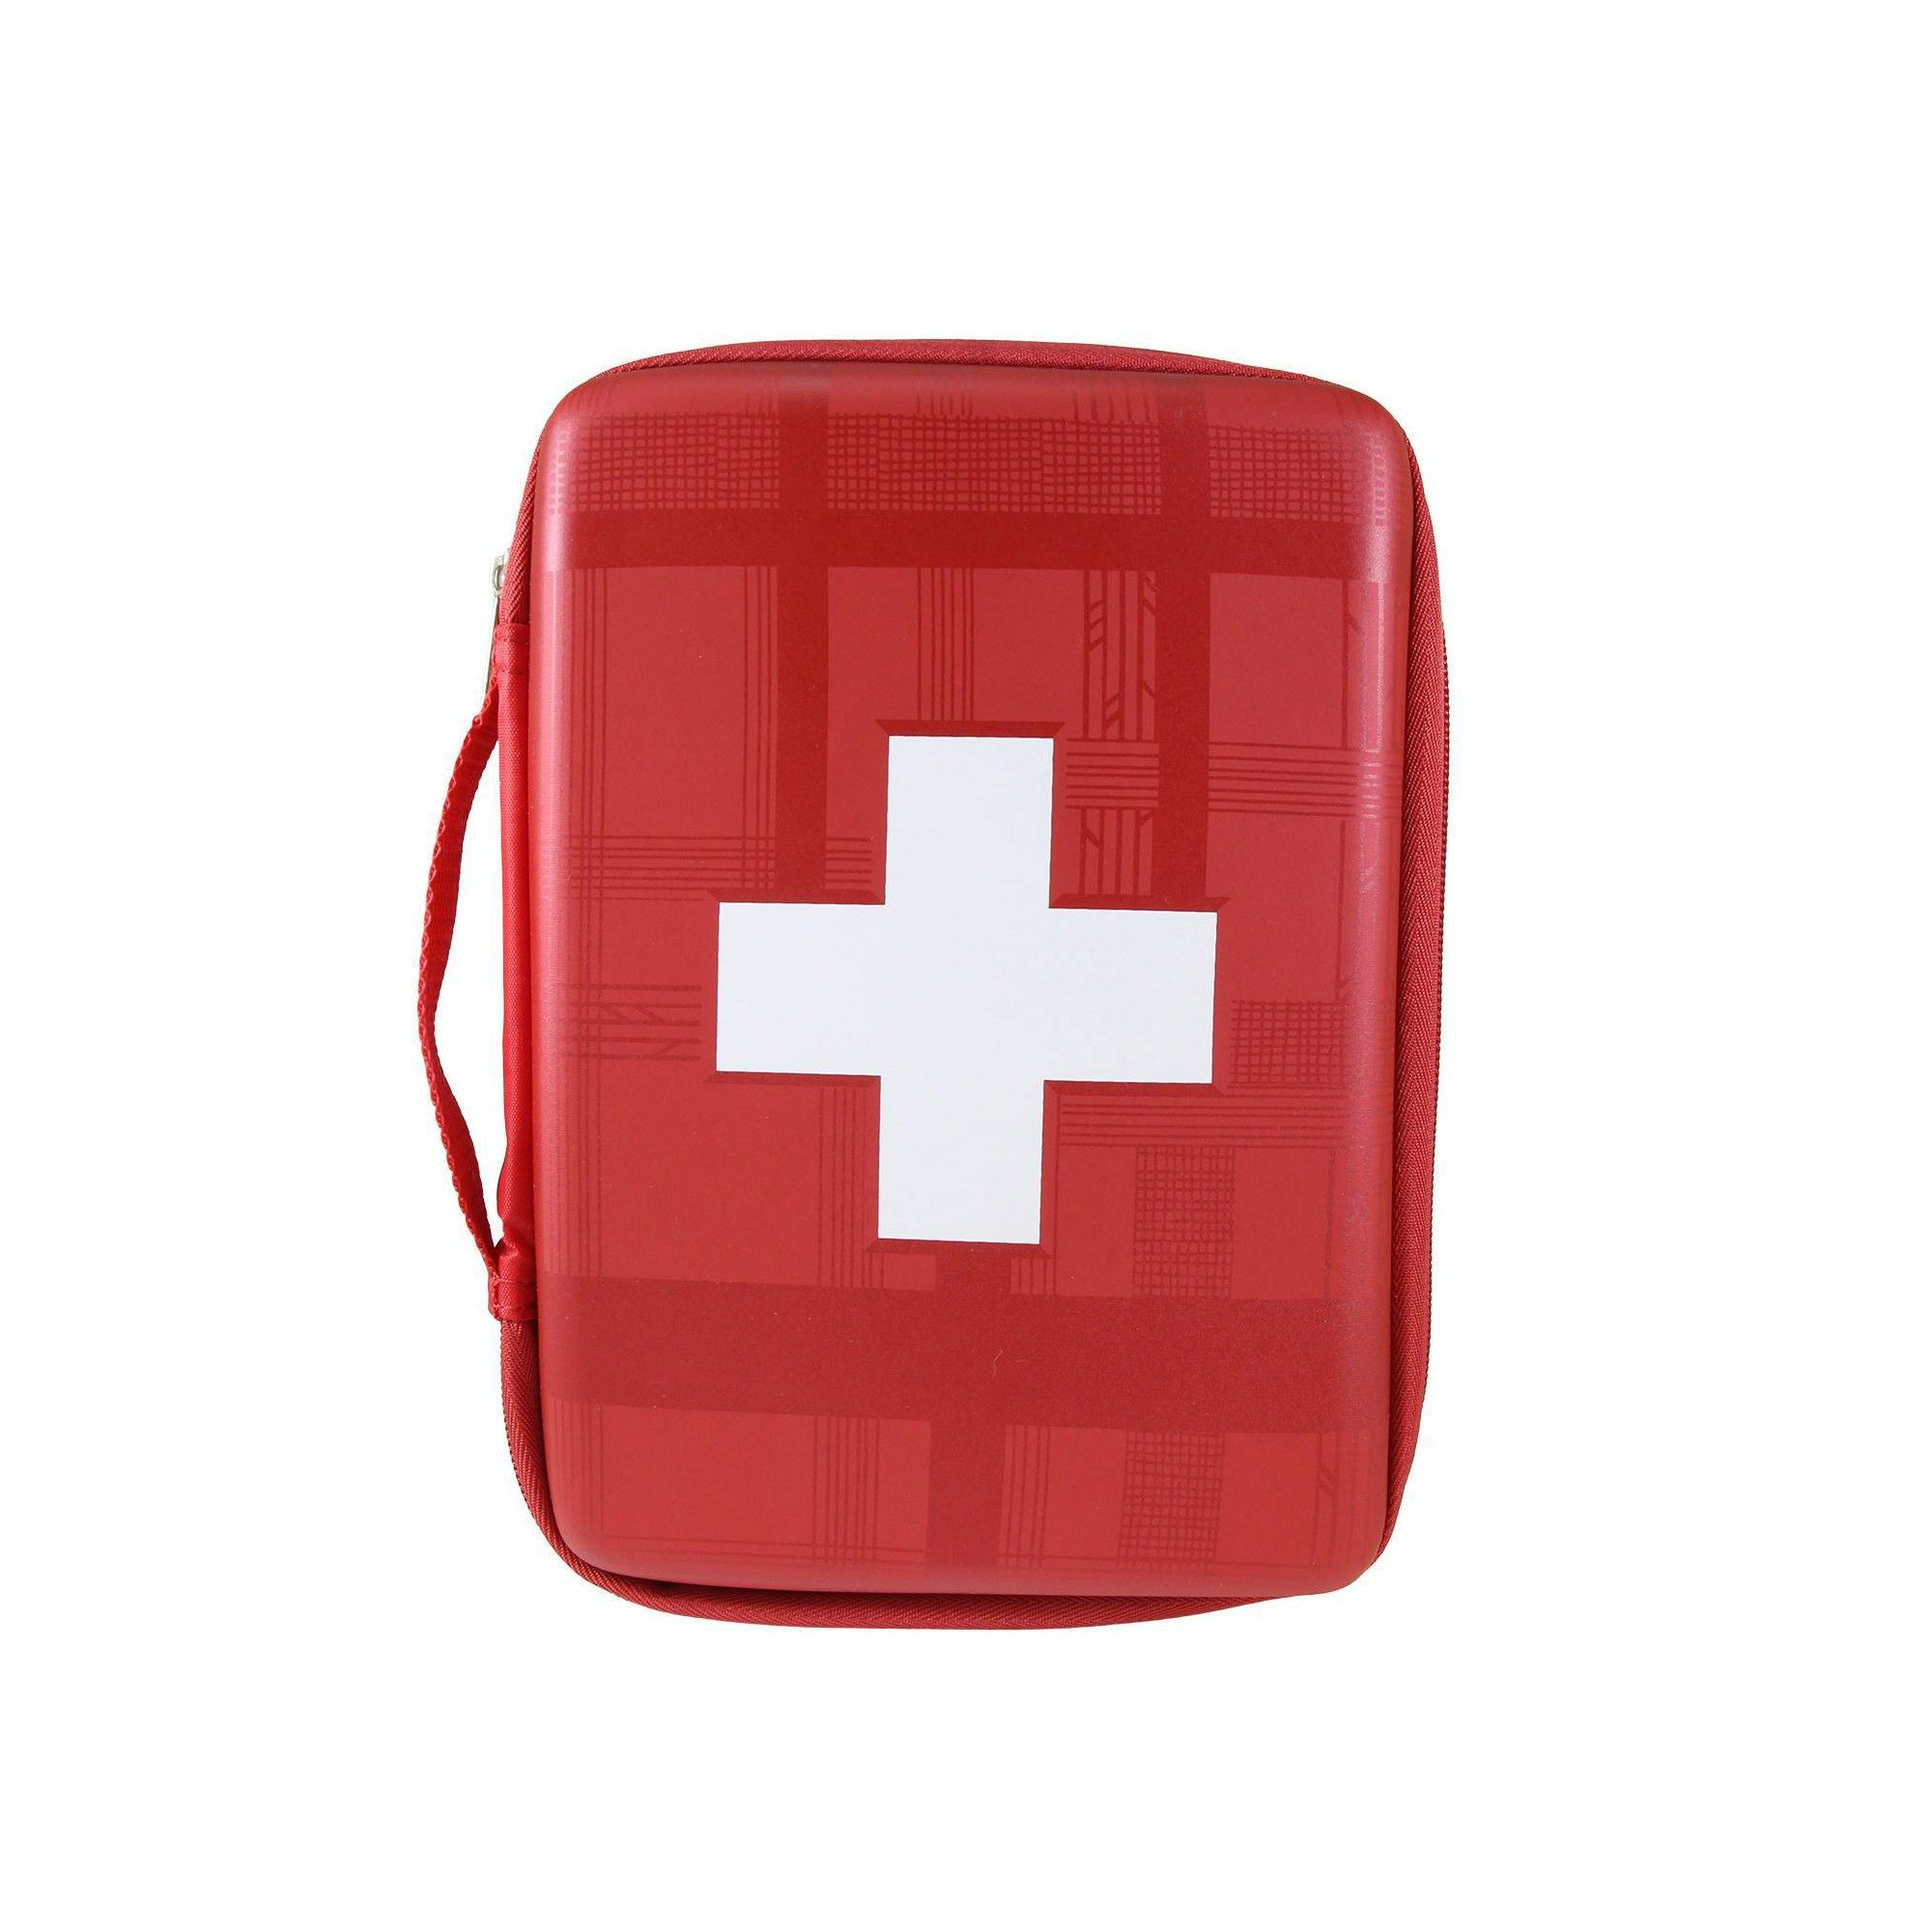 Band Aid Red Build Your Own First Aid Kit Bag Kit Bag Band Aid First Aid Kit